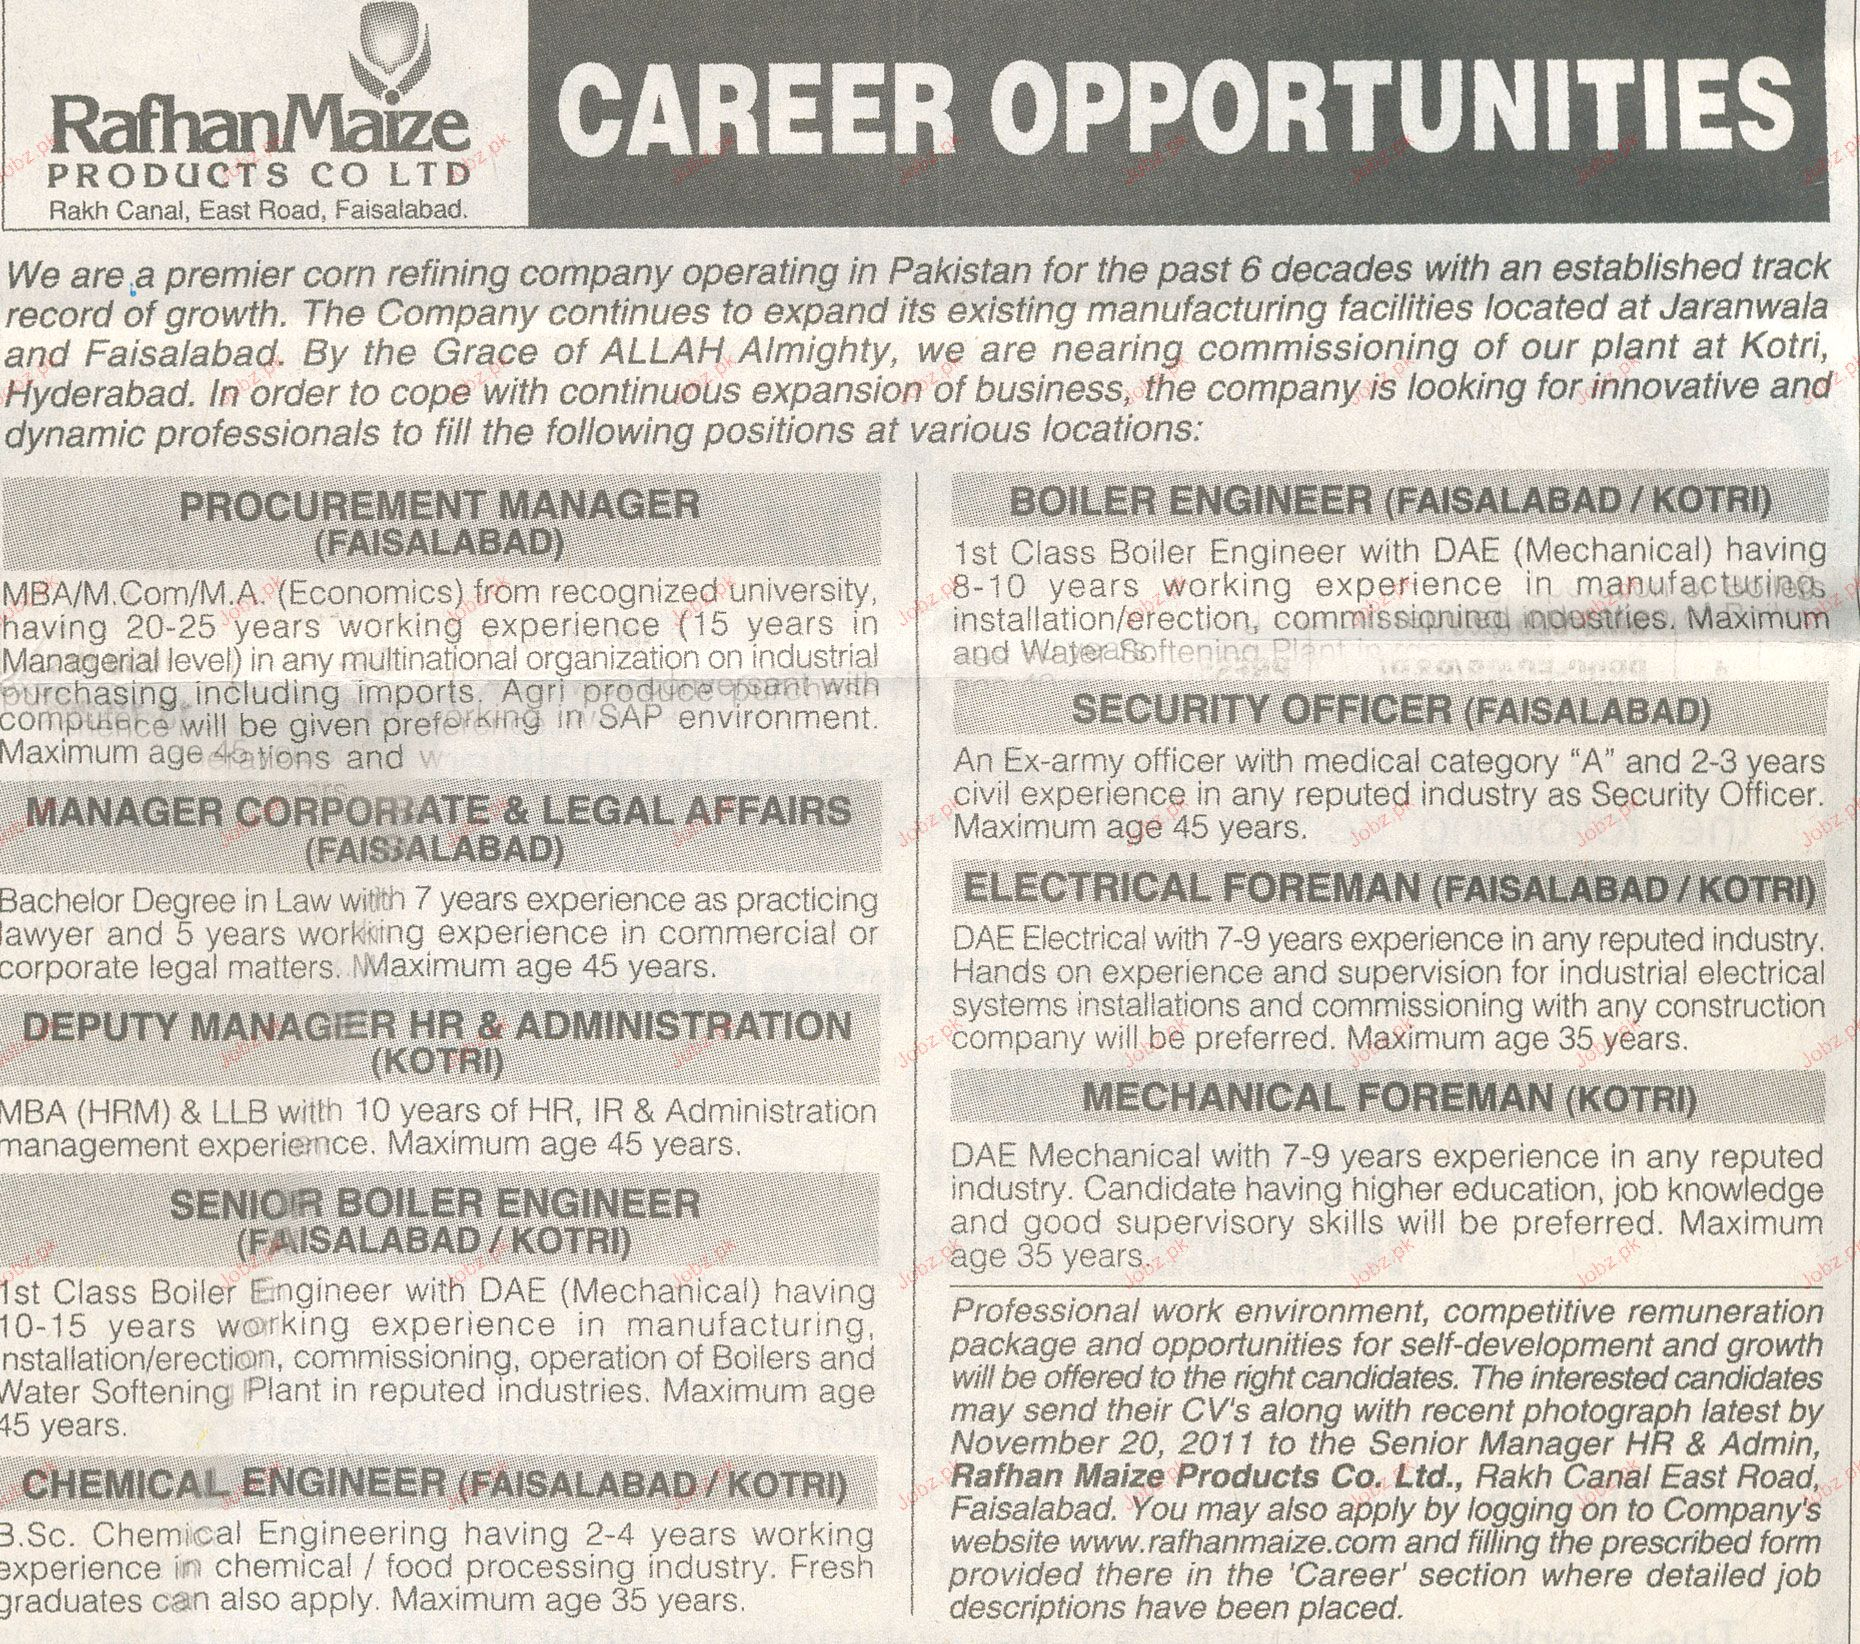 Procurement Manager, Boiler Engineers Job Opportunity